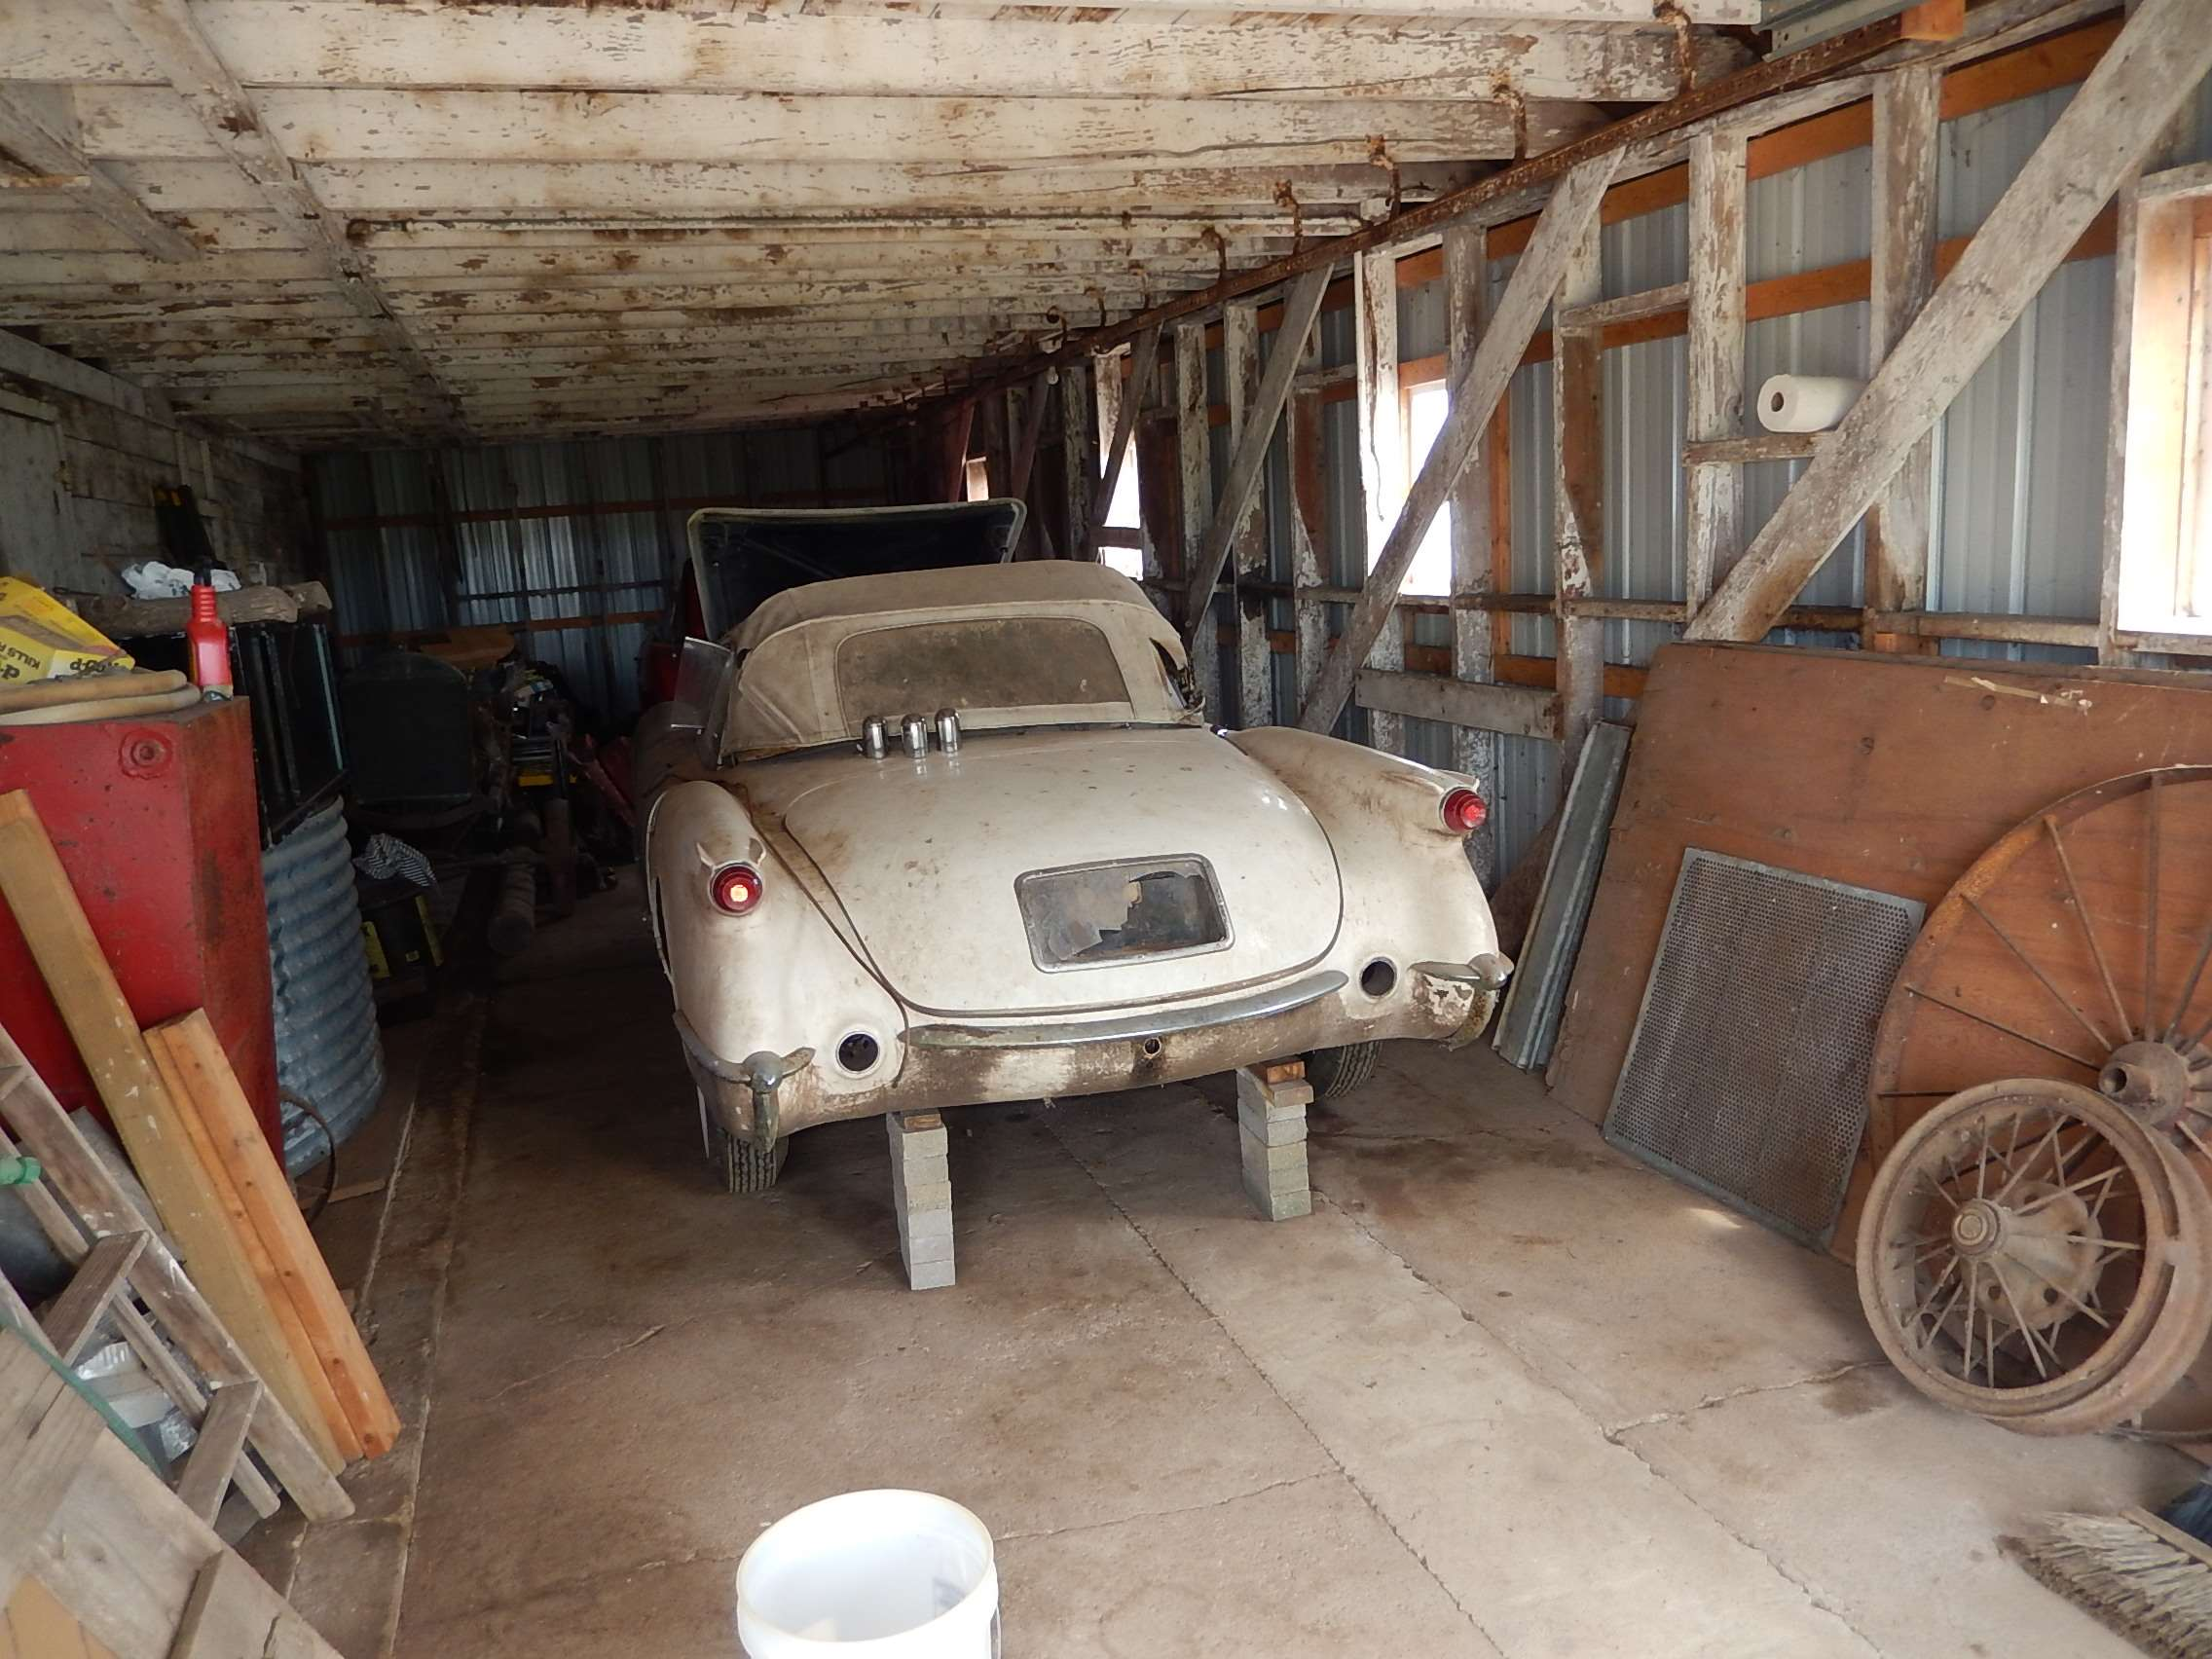 1954 Corvette In Barn